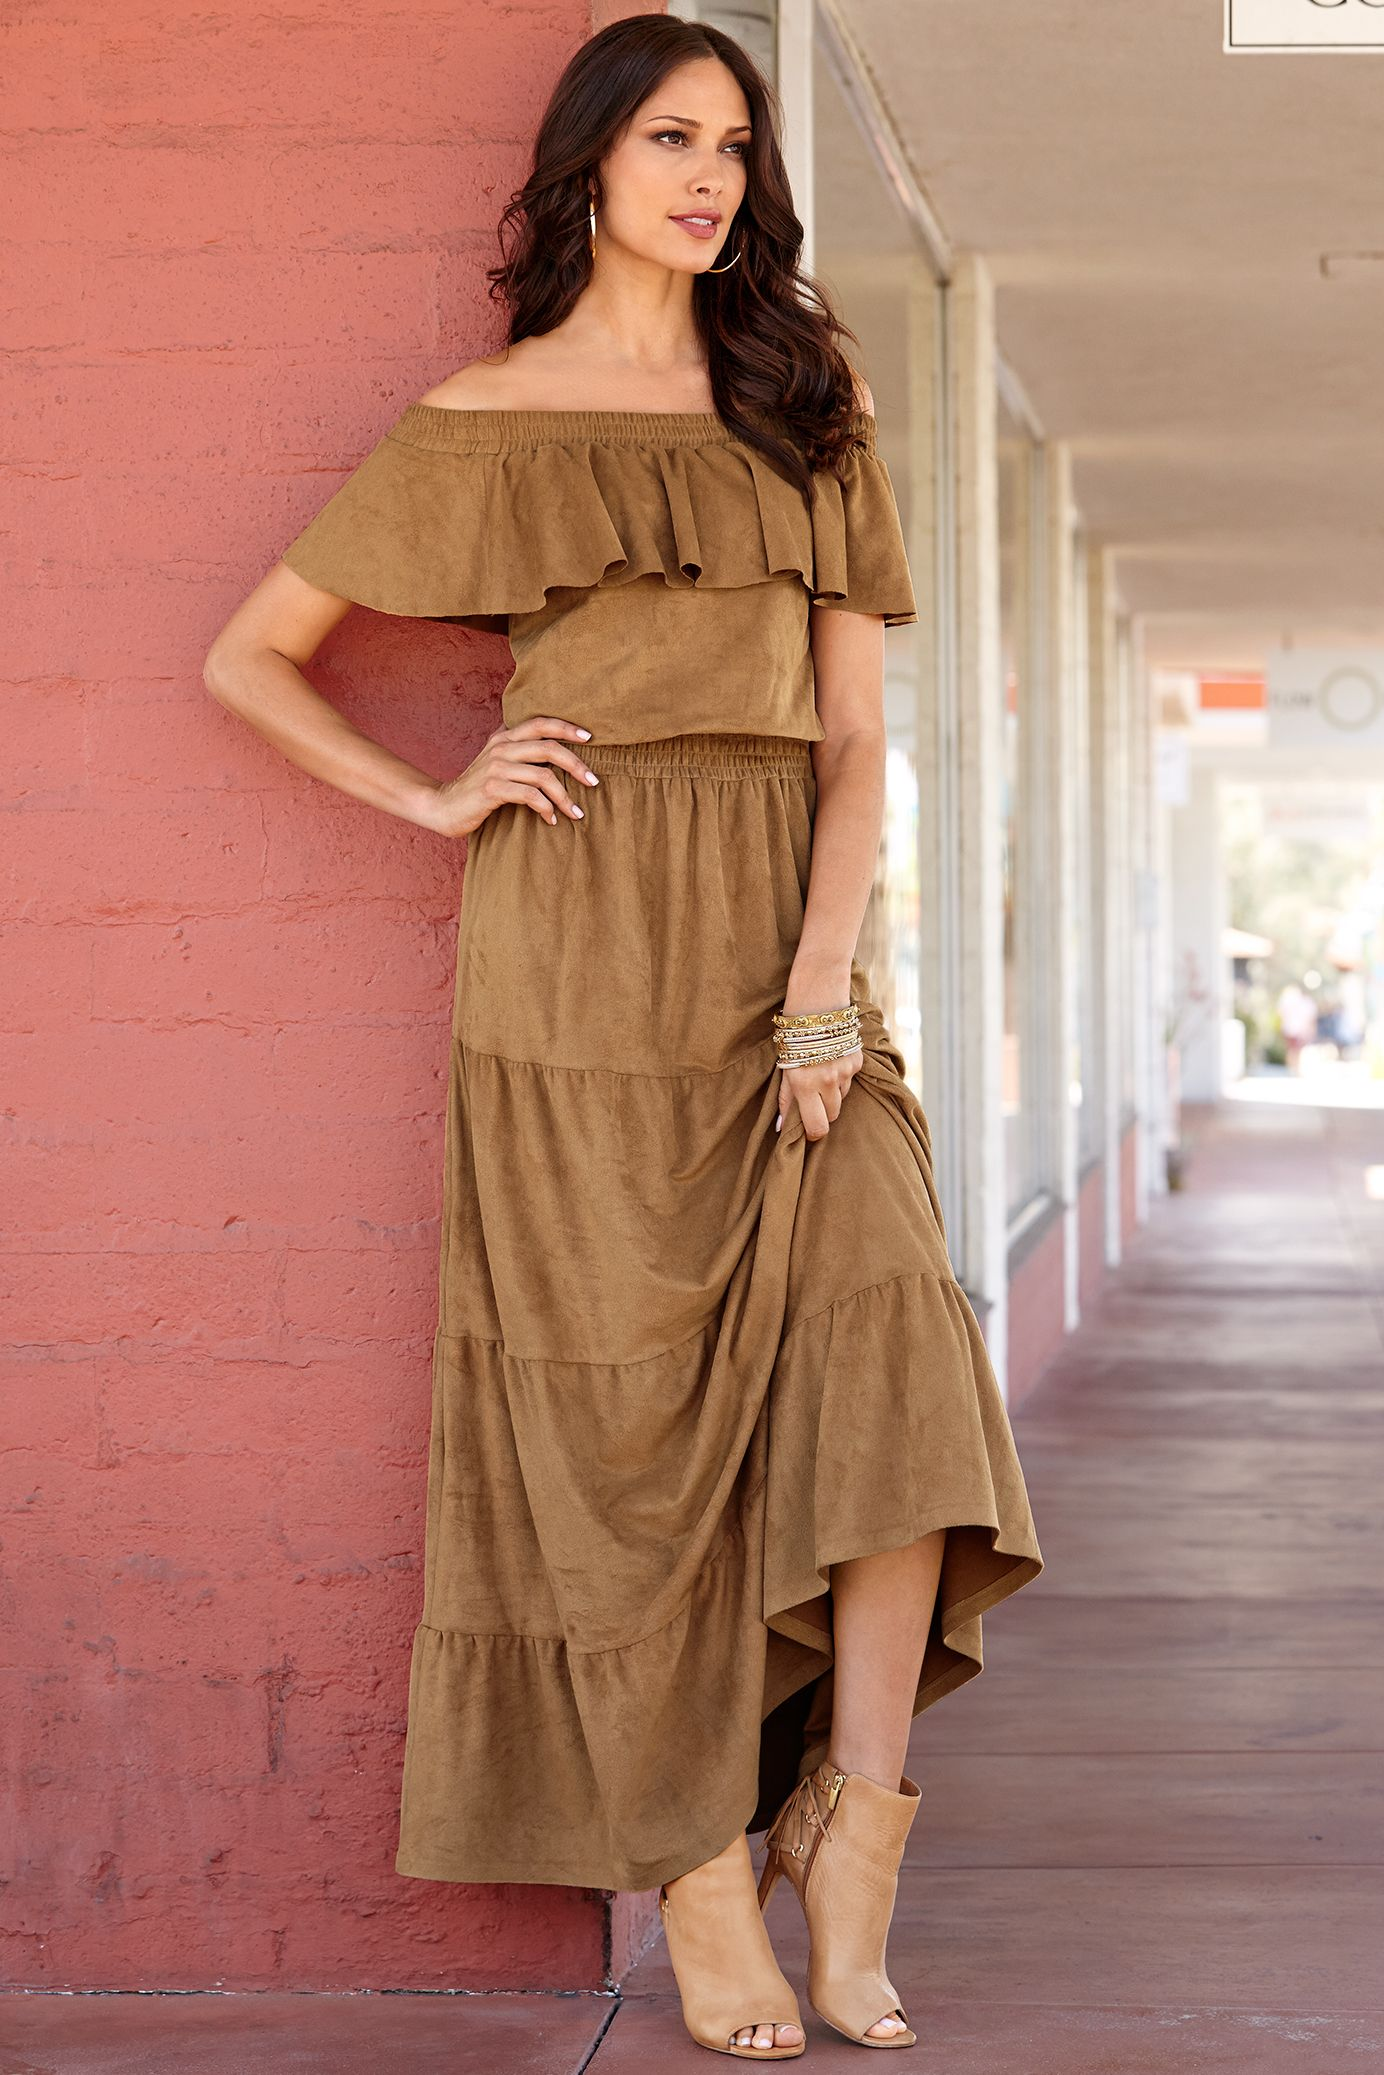 You are bohemian chic in our sensuous faux suede maxi dress with a ruffle overlay that accentuates the sexy smocked neckline and a tiered skirt that flows from a smocked waist.